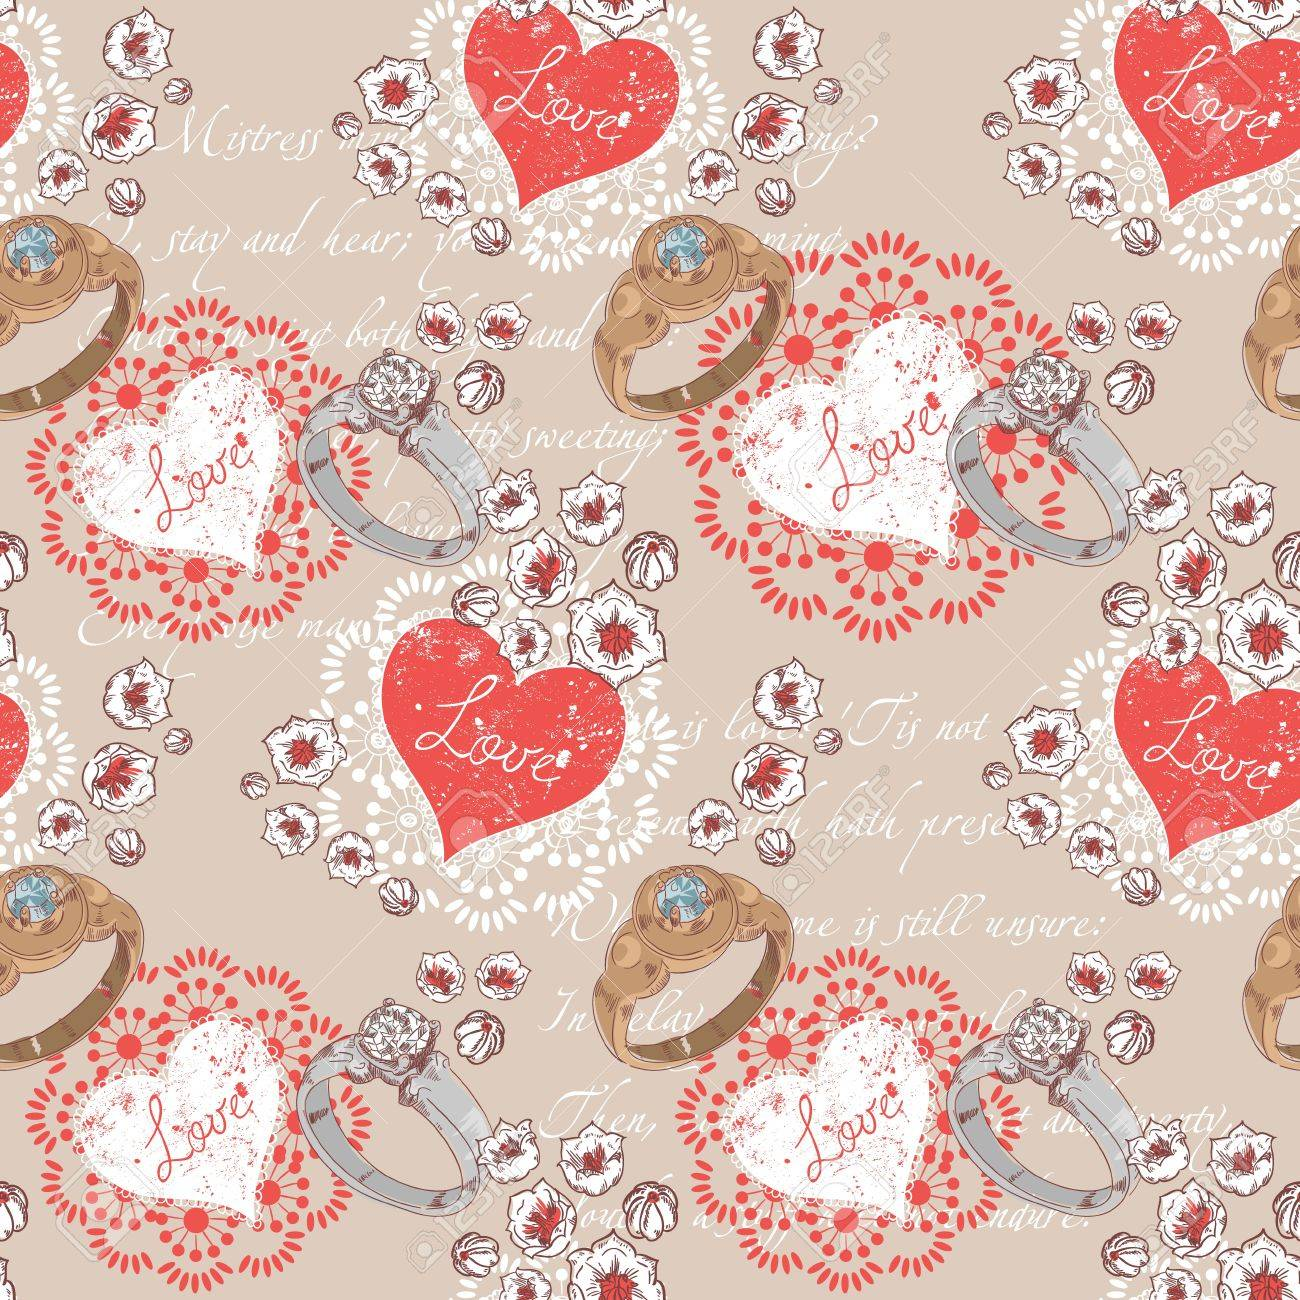 Valentine romantic retro seamless pattern with wedding rings and hearts on a verse italic text background Stock Vector - 16988783